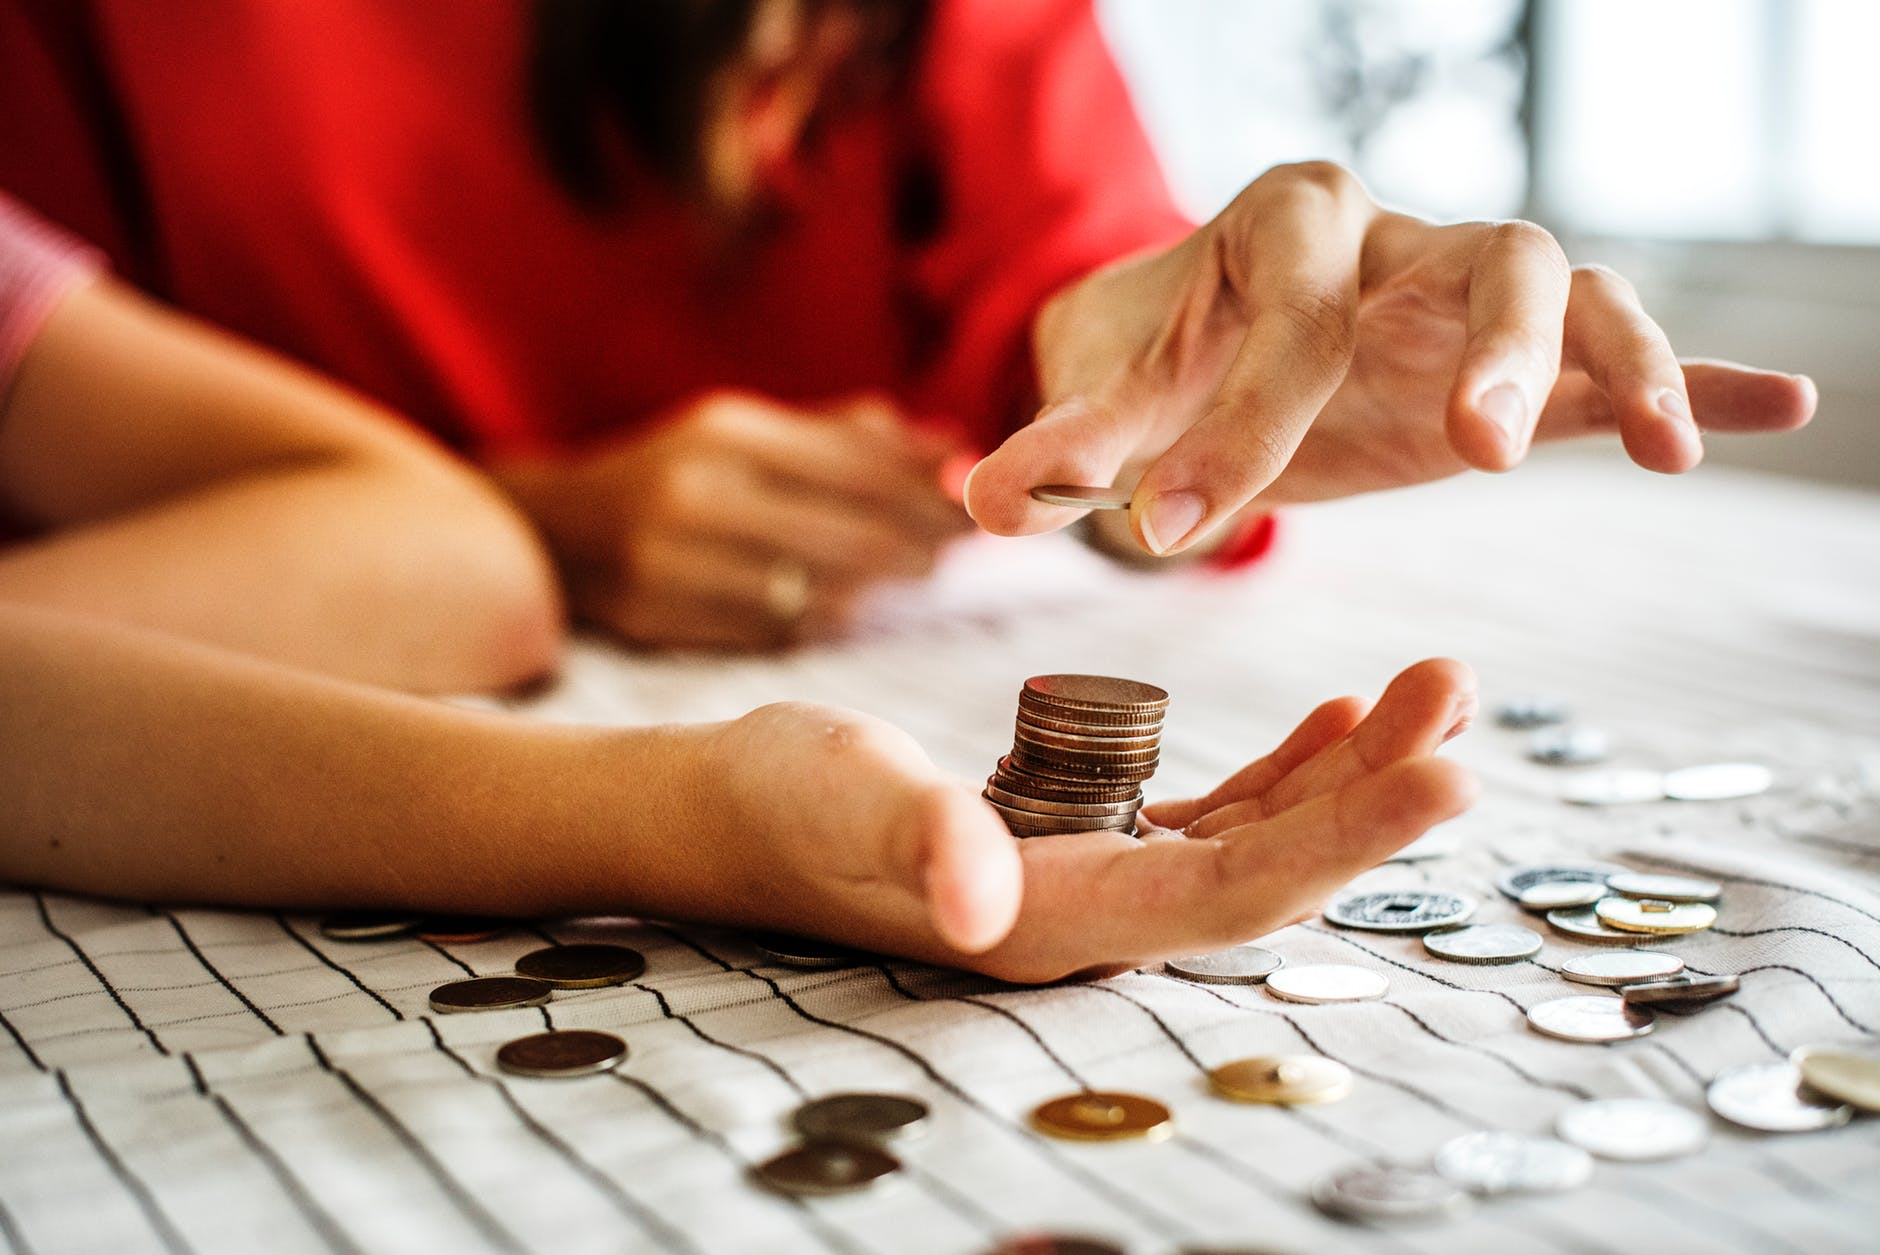 How To Get Financial Aid To Continue With Studies And Build A Career